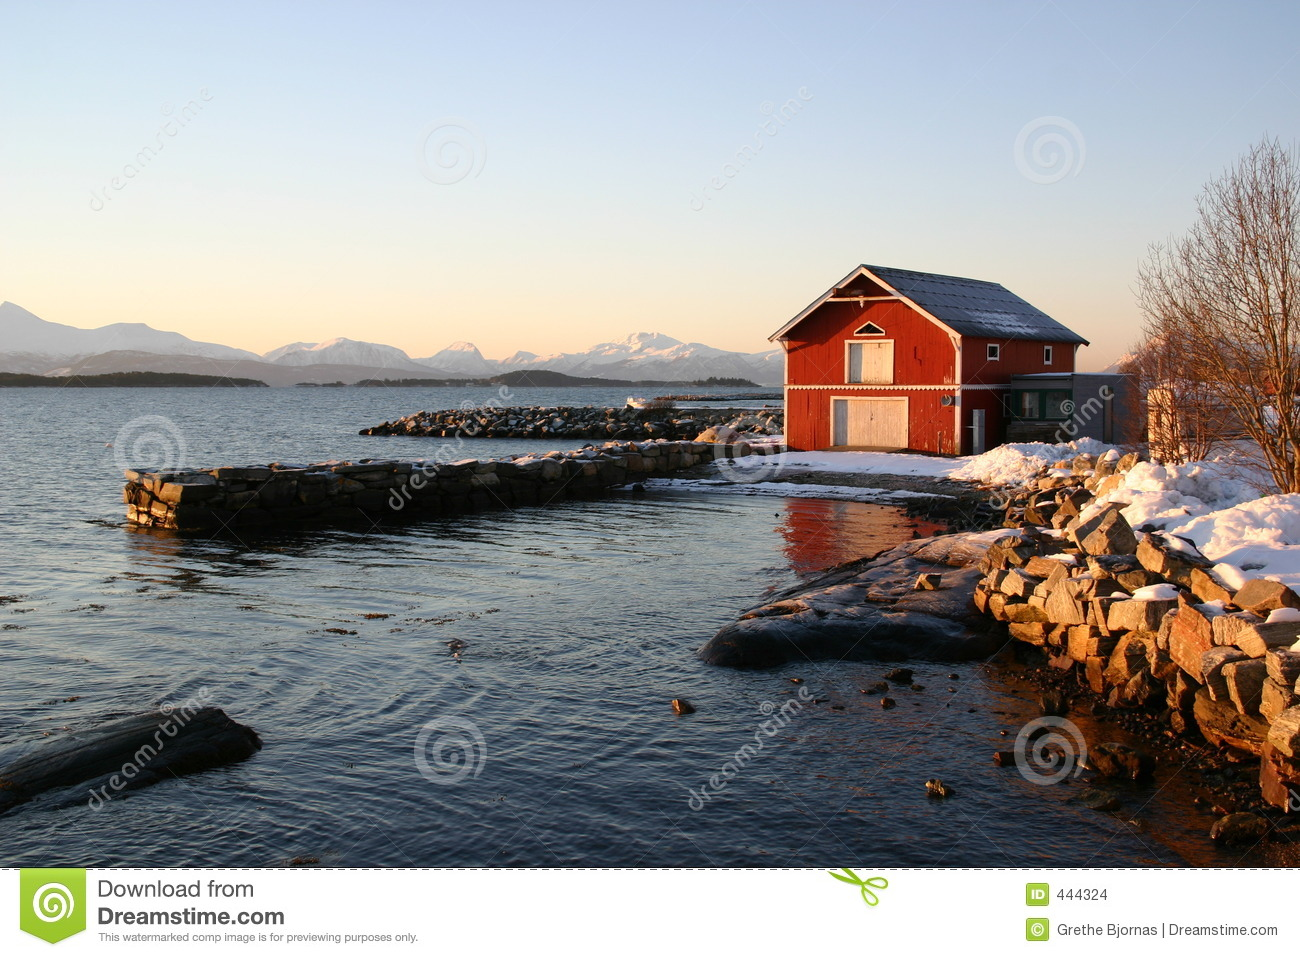 Christmas In Norway.Cold Christmas In Norway Stock Photo Image Of Seaside 444324